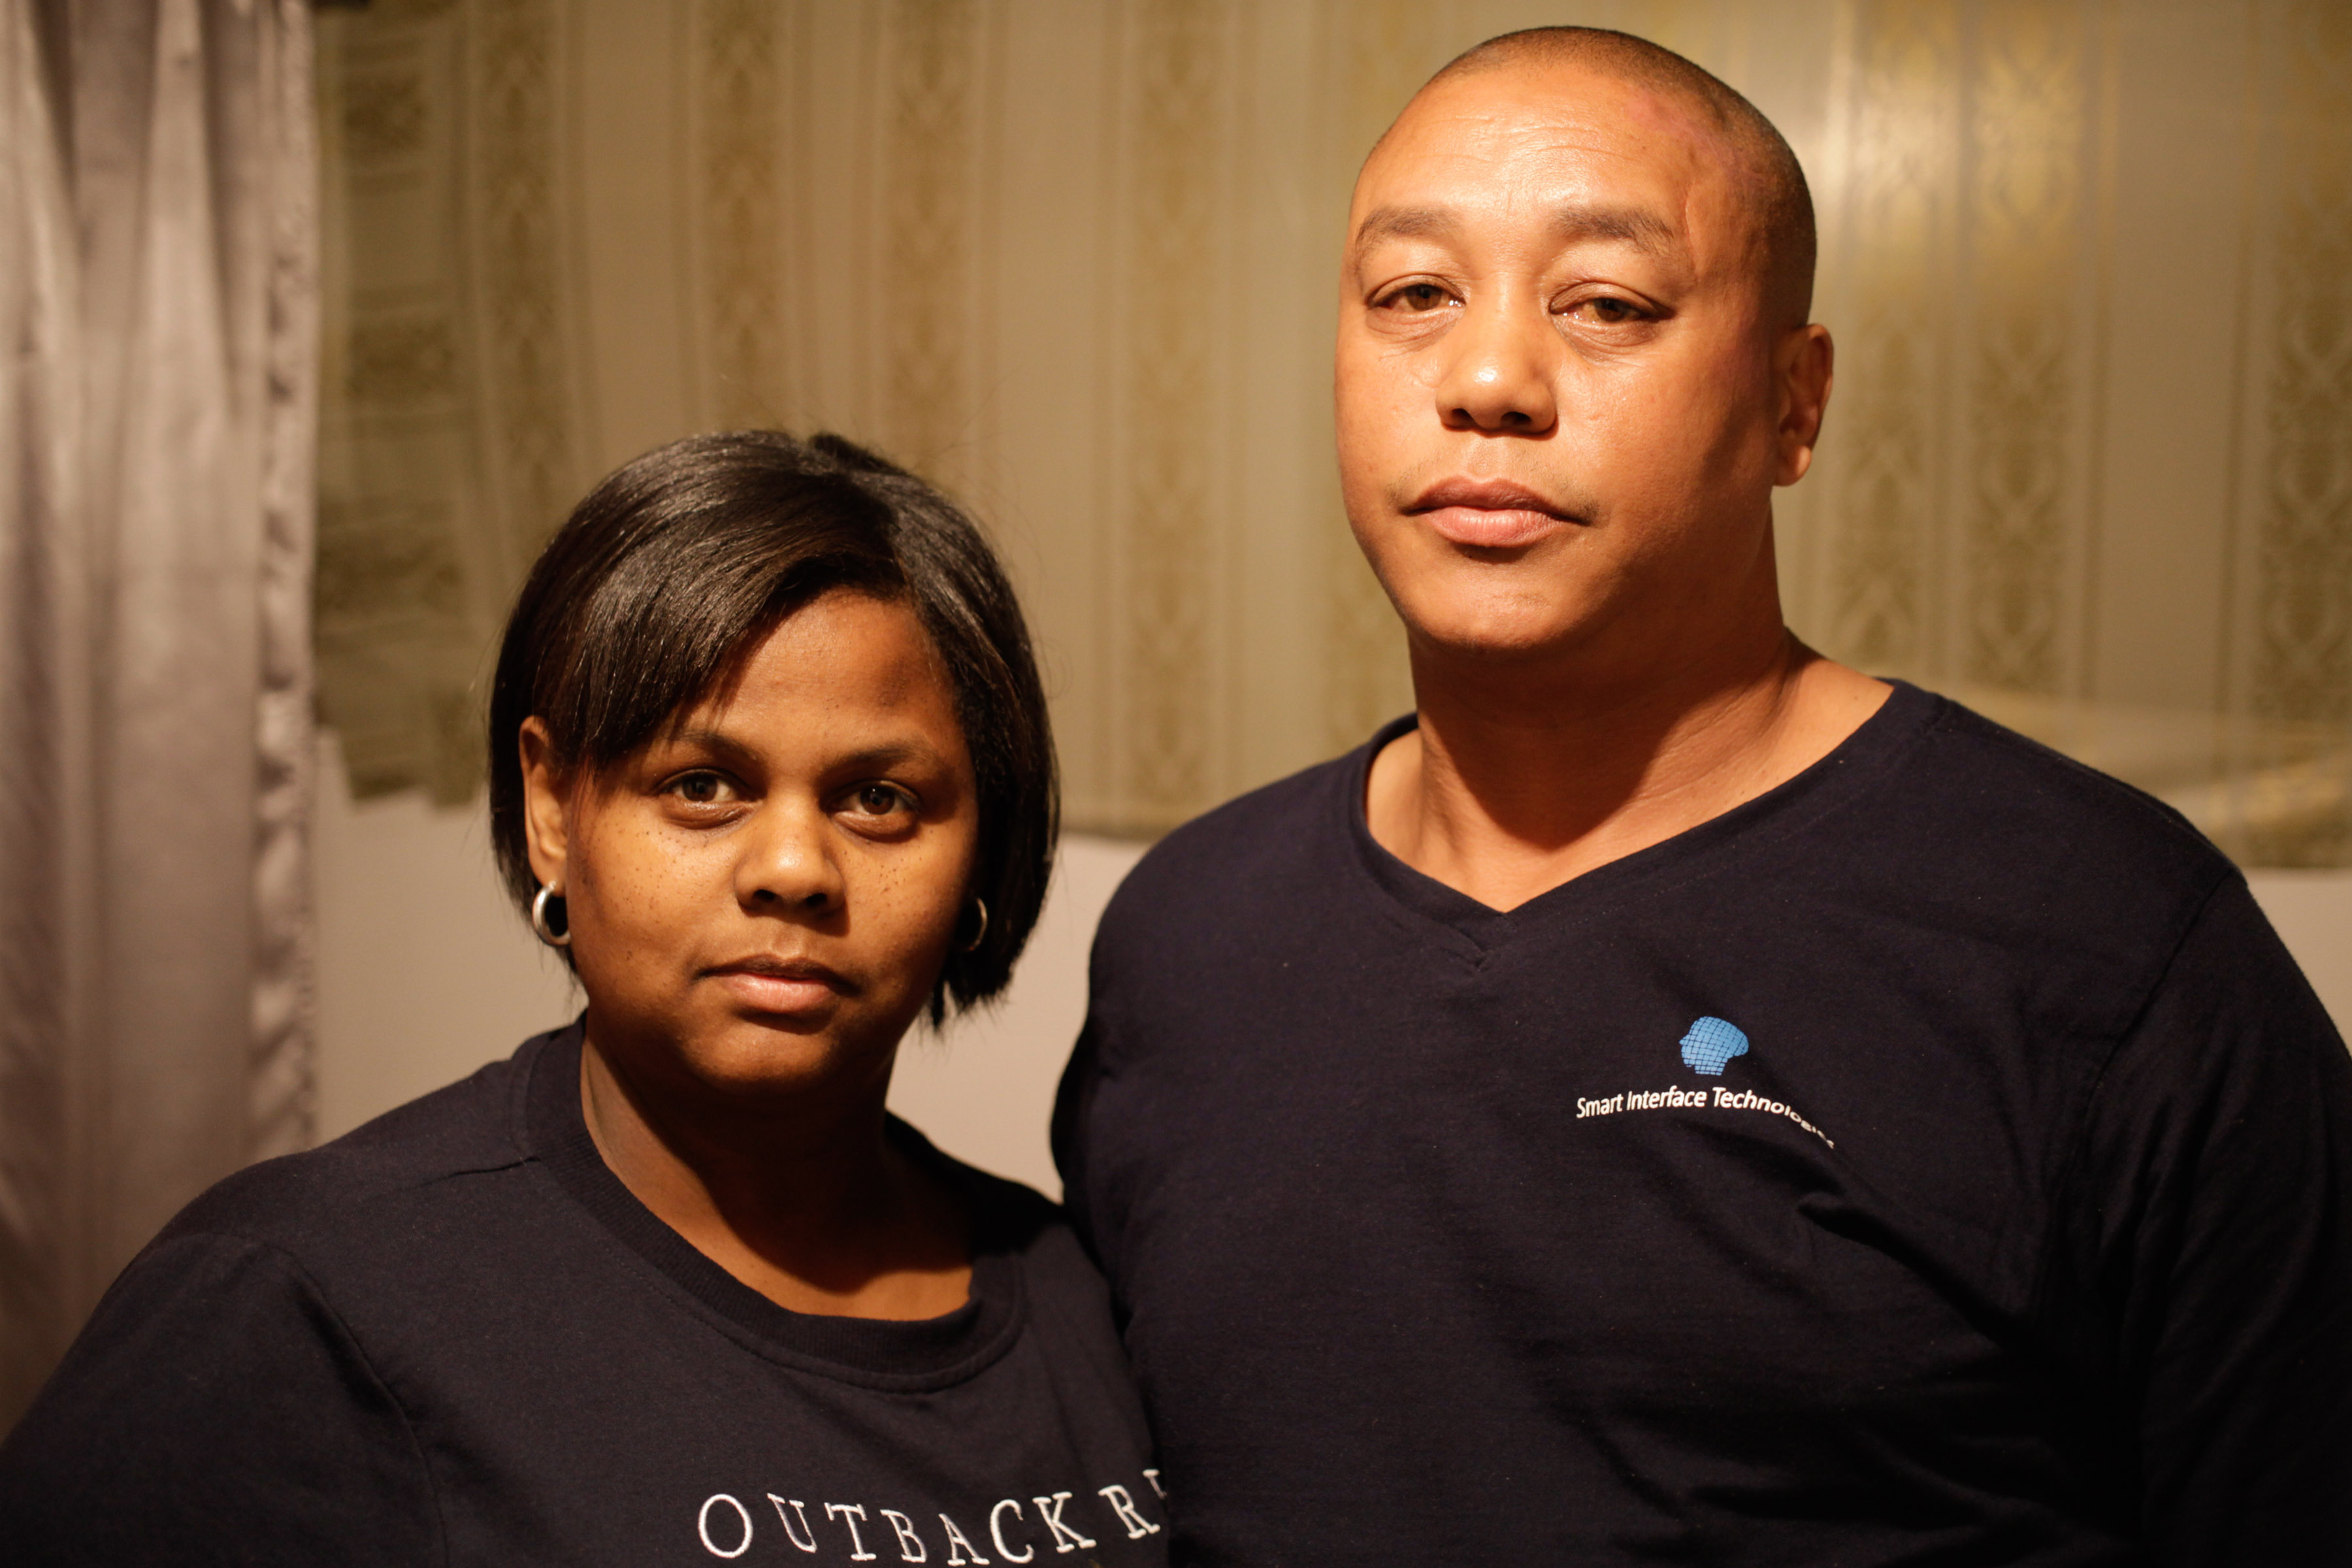 19 August 2019: Bradley van Harte and Monique Lottering have opened a case with the military police against soldiers who allegedly assaulted Van Harte during the anti-gang operation that began in Hanover Park in mid-July.